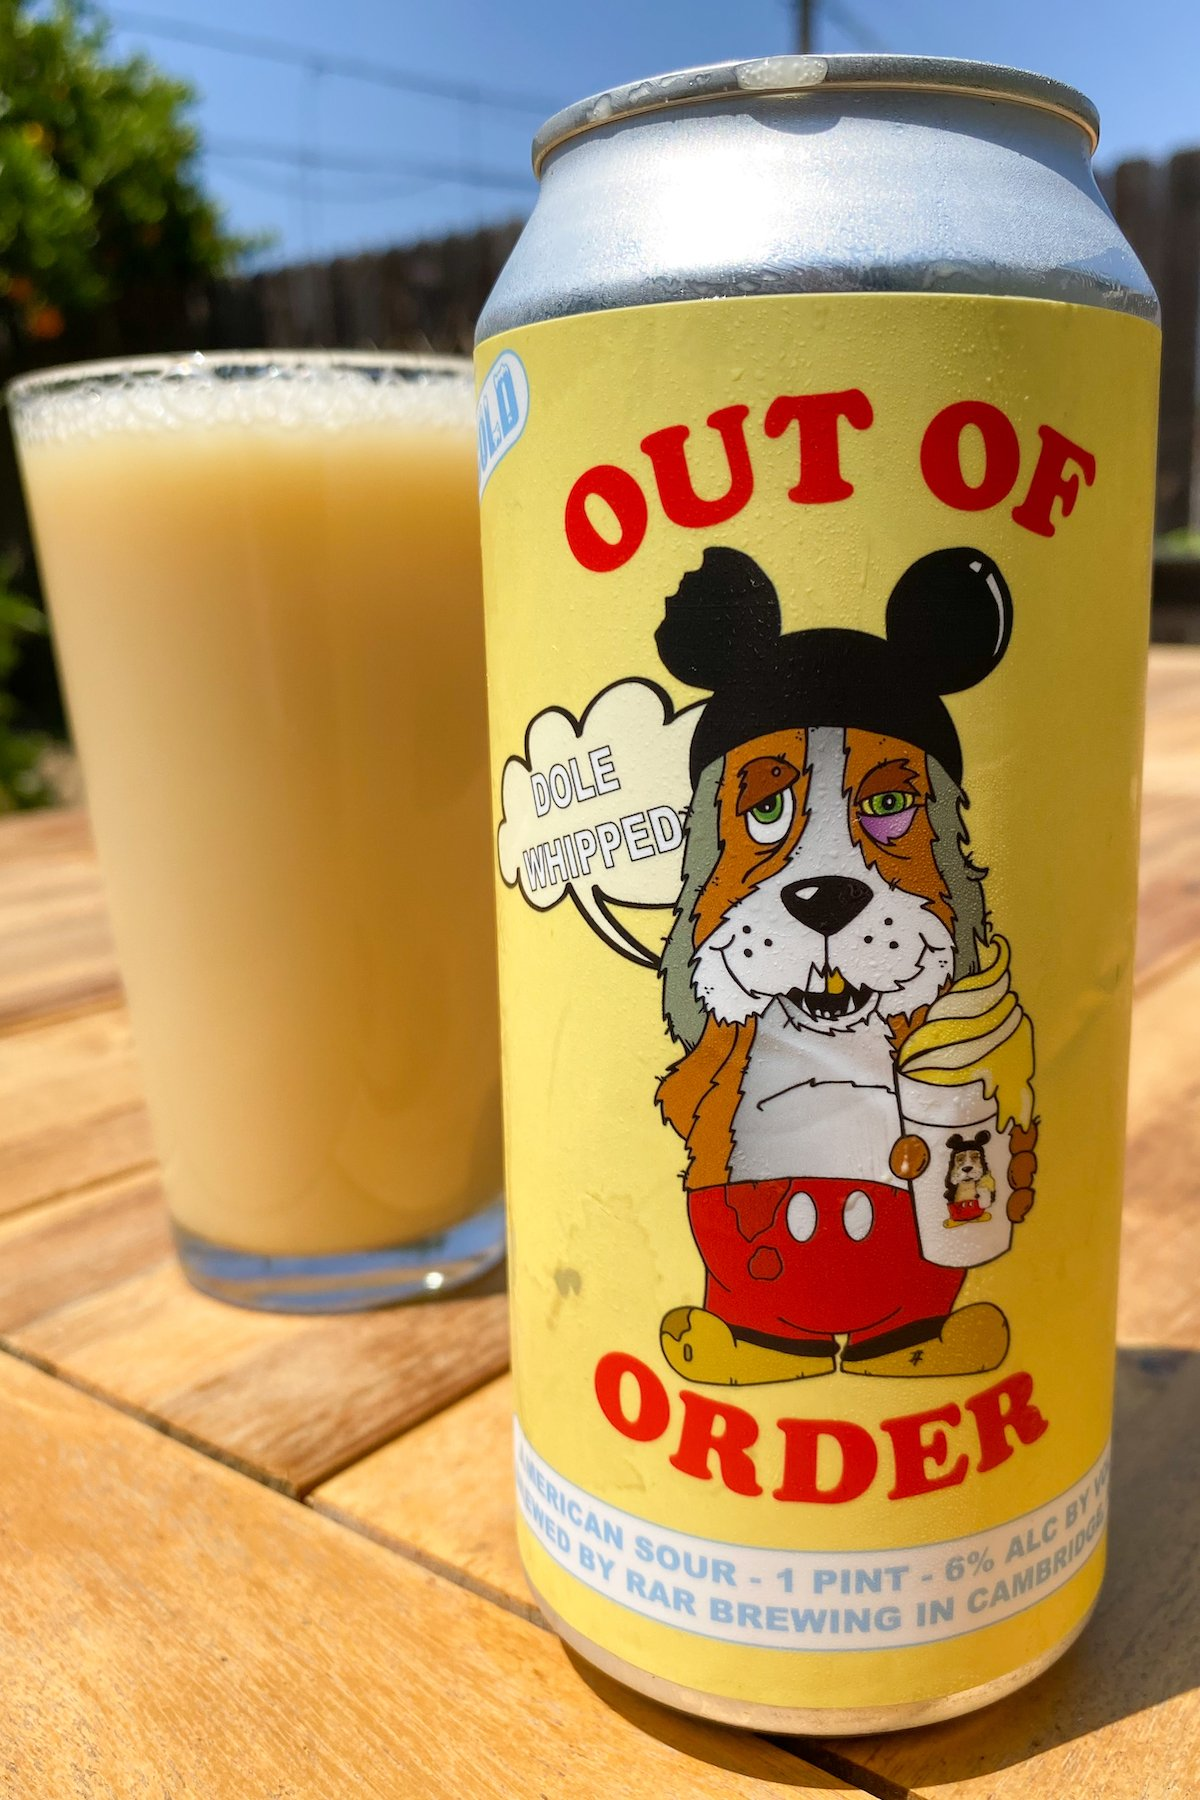 A yellow Out of Order beer can sits in front of a pint glass that the pineapple dole whip beer has been poured into.